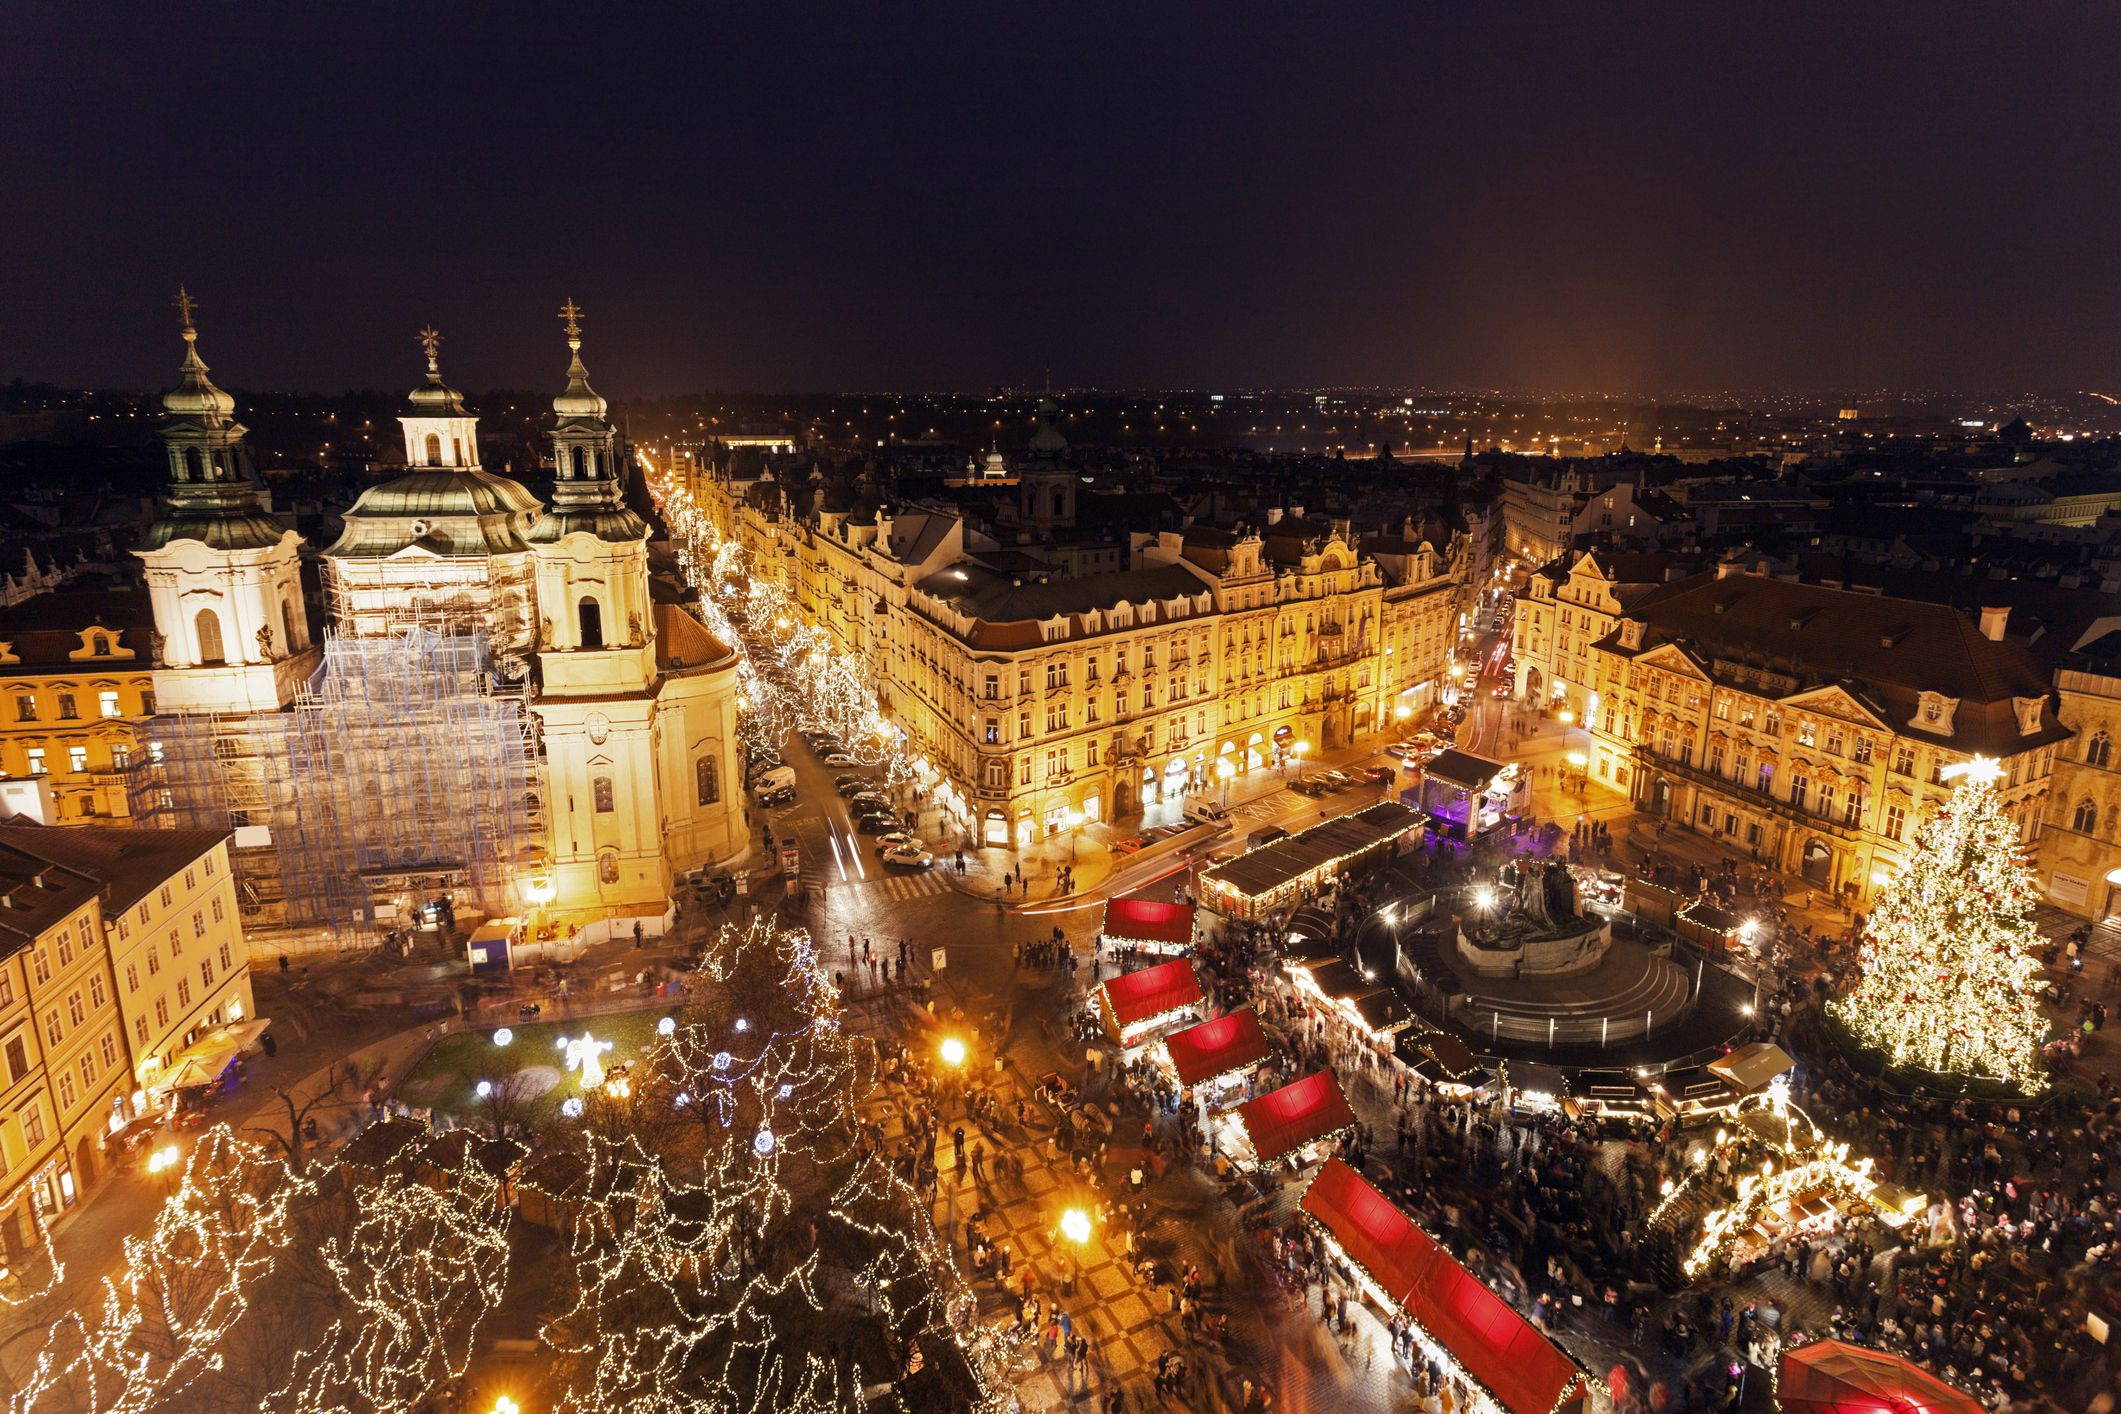 czech republic dating traditions Holidays and traditions in the czech republic - christmas, easter, st nicholas day.